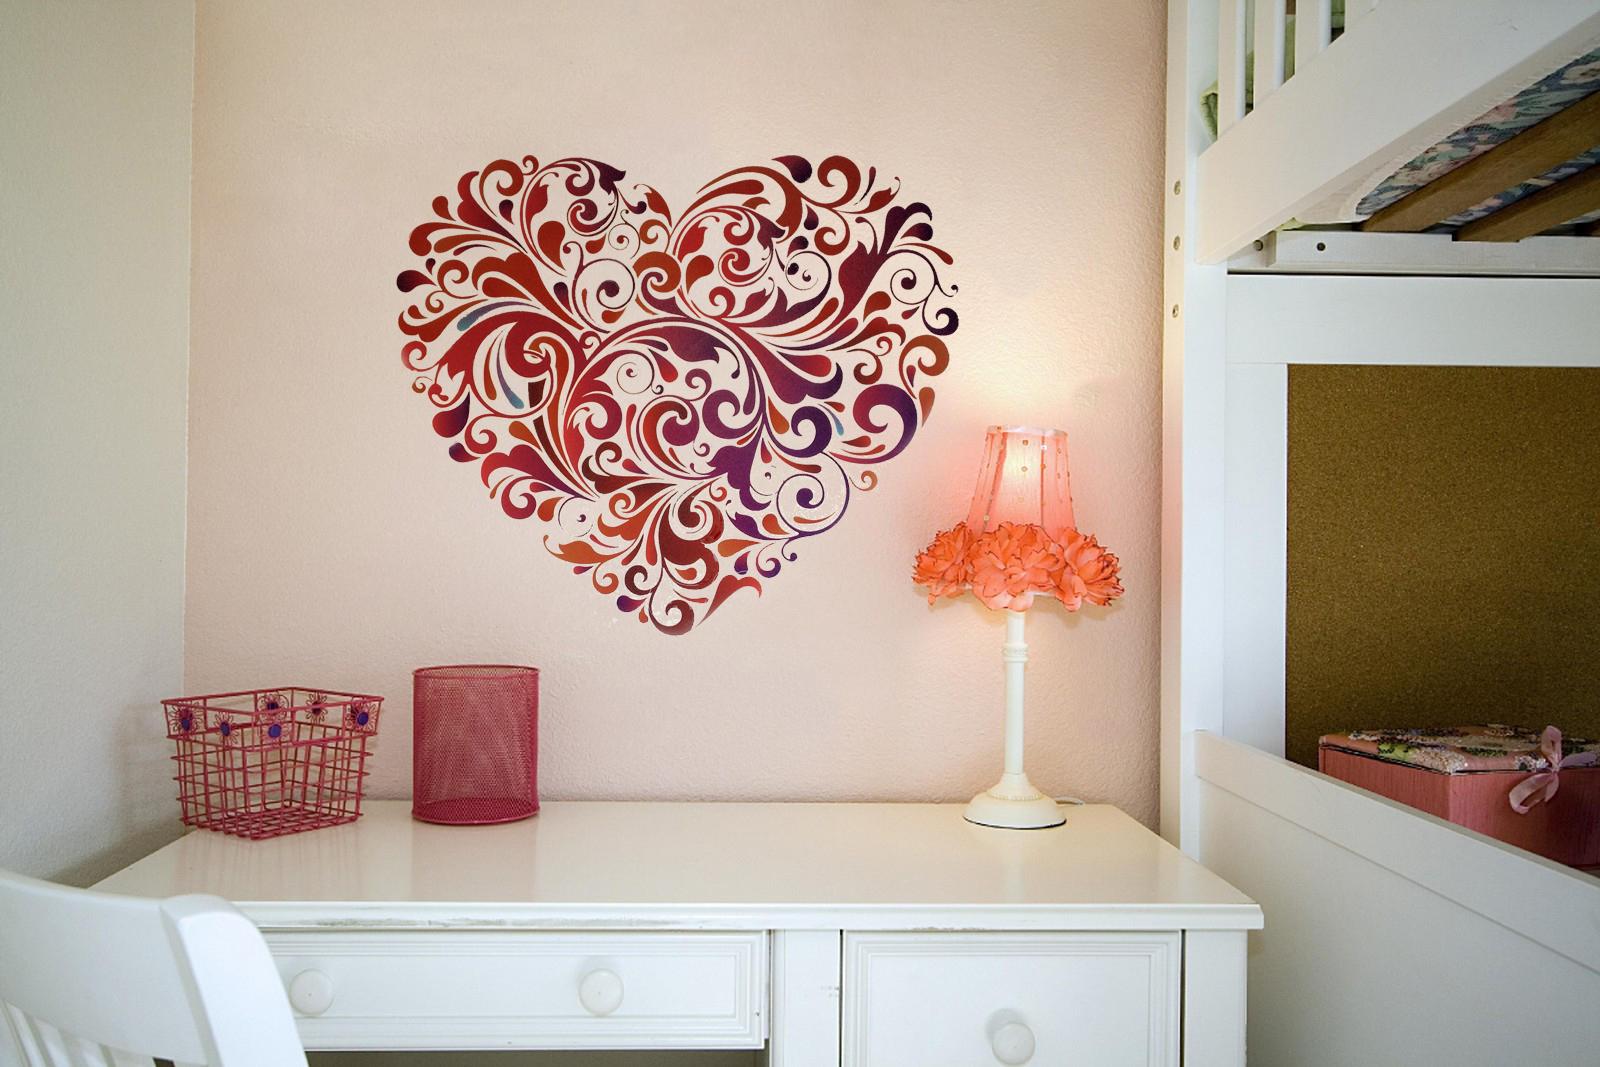 Hanging Wall Decor Ideas Make Your Home Beautiful With Unique Wall Decor